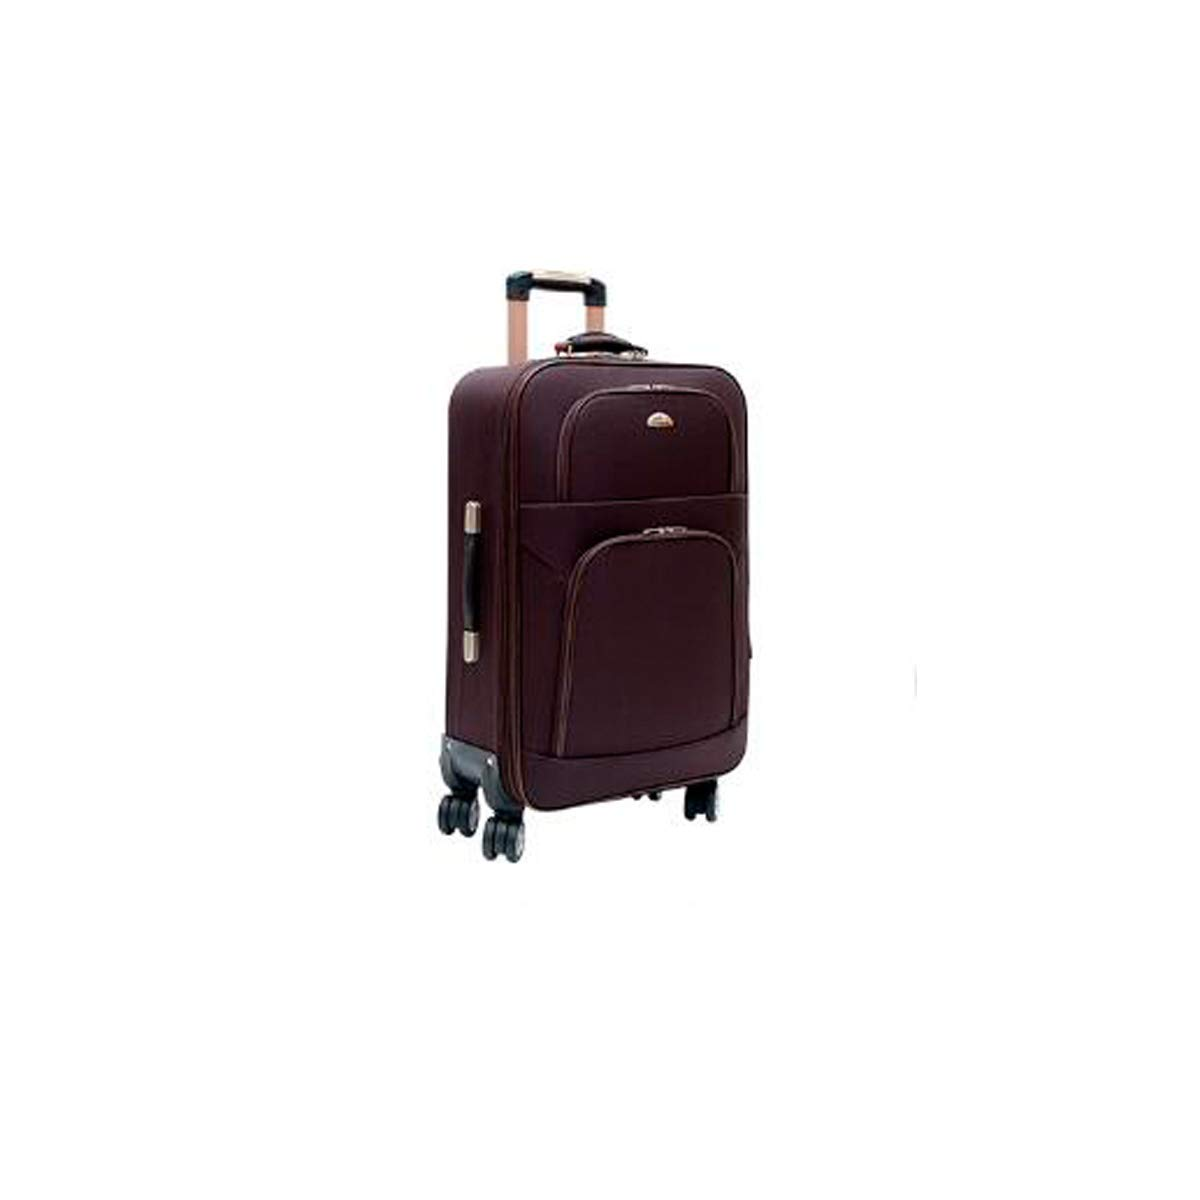 20 Best Gift Bahaowenjuguan Soft Rotating Luggage Carrying Case Travel Organizer Color : Brown Trolley Case Black